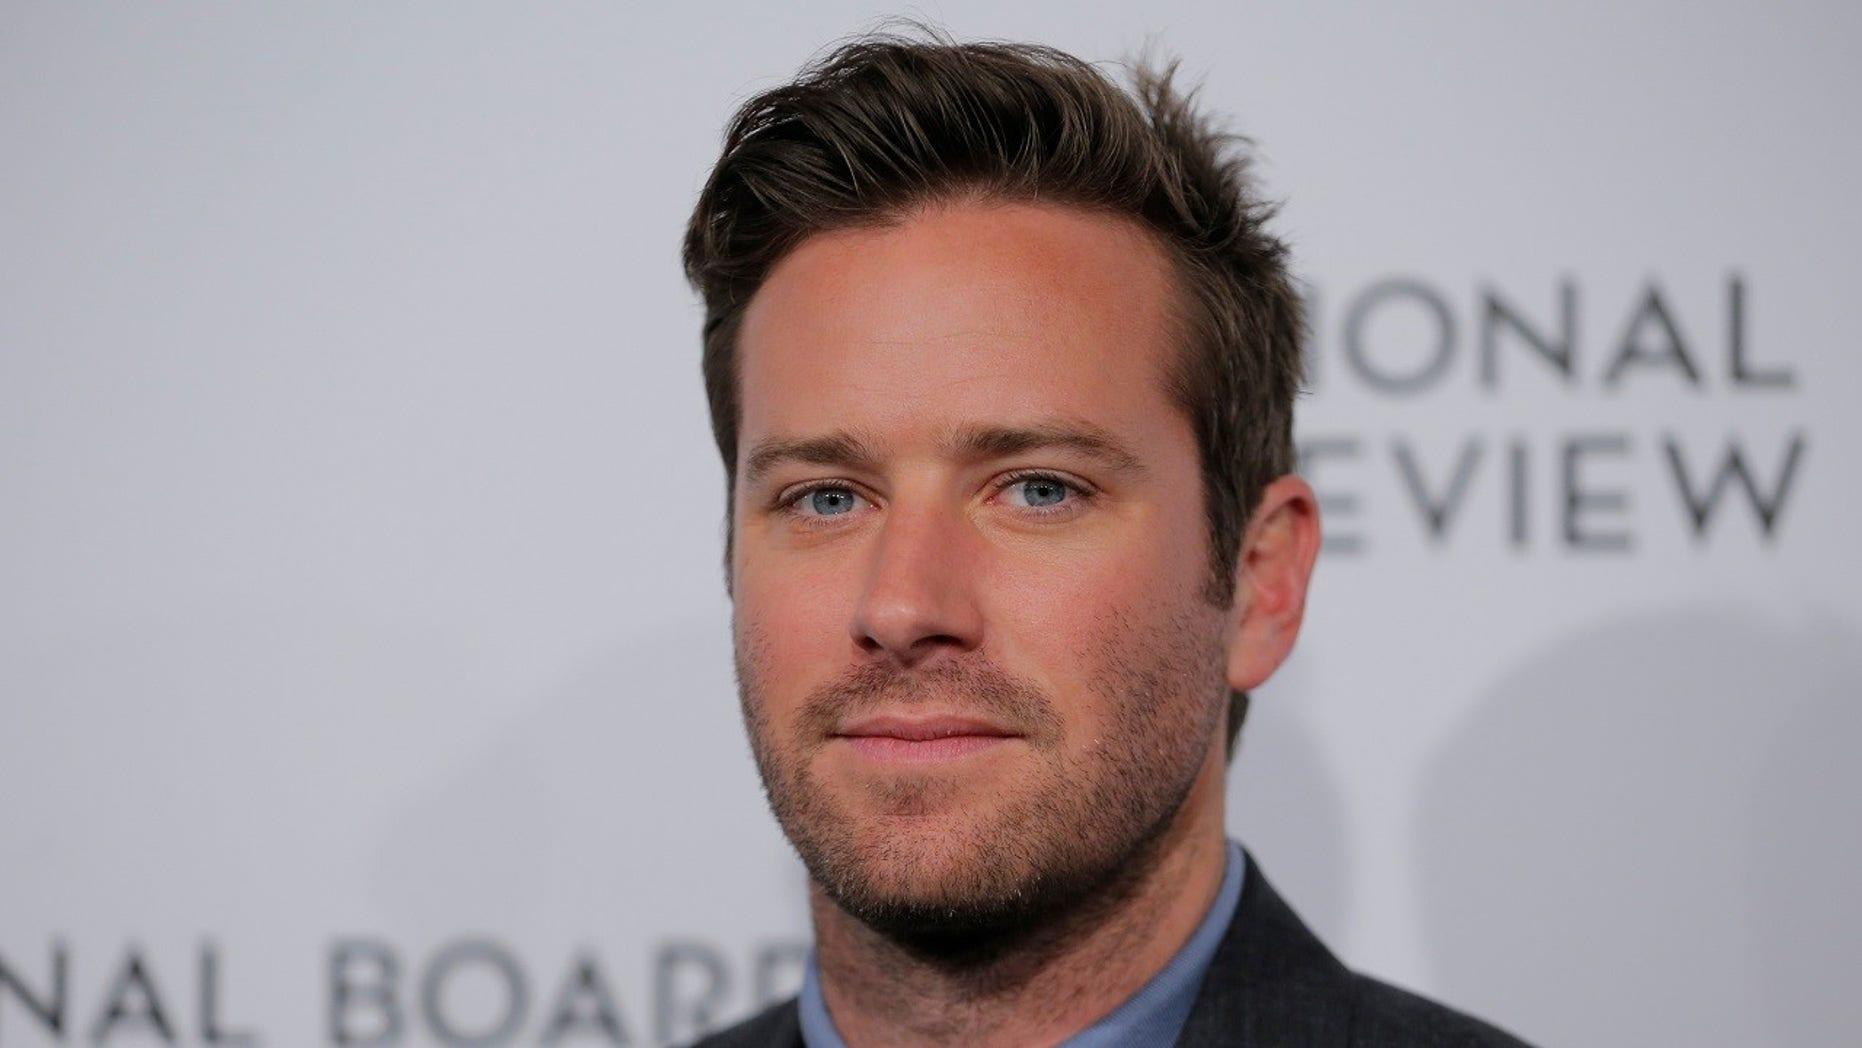 Actor Armie Hammer renewed a Twitter feud with BuzzFeed writer Anne Helen Petersen.